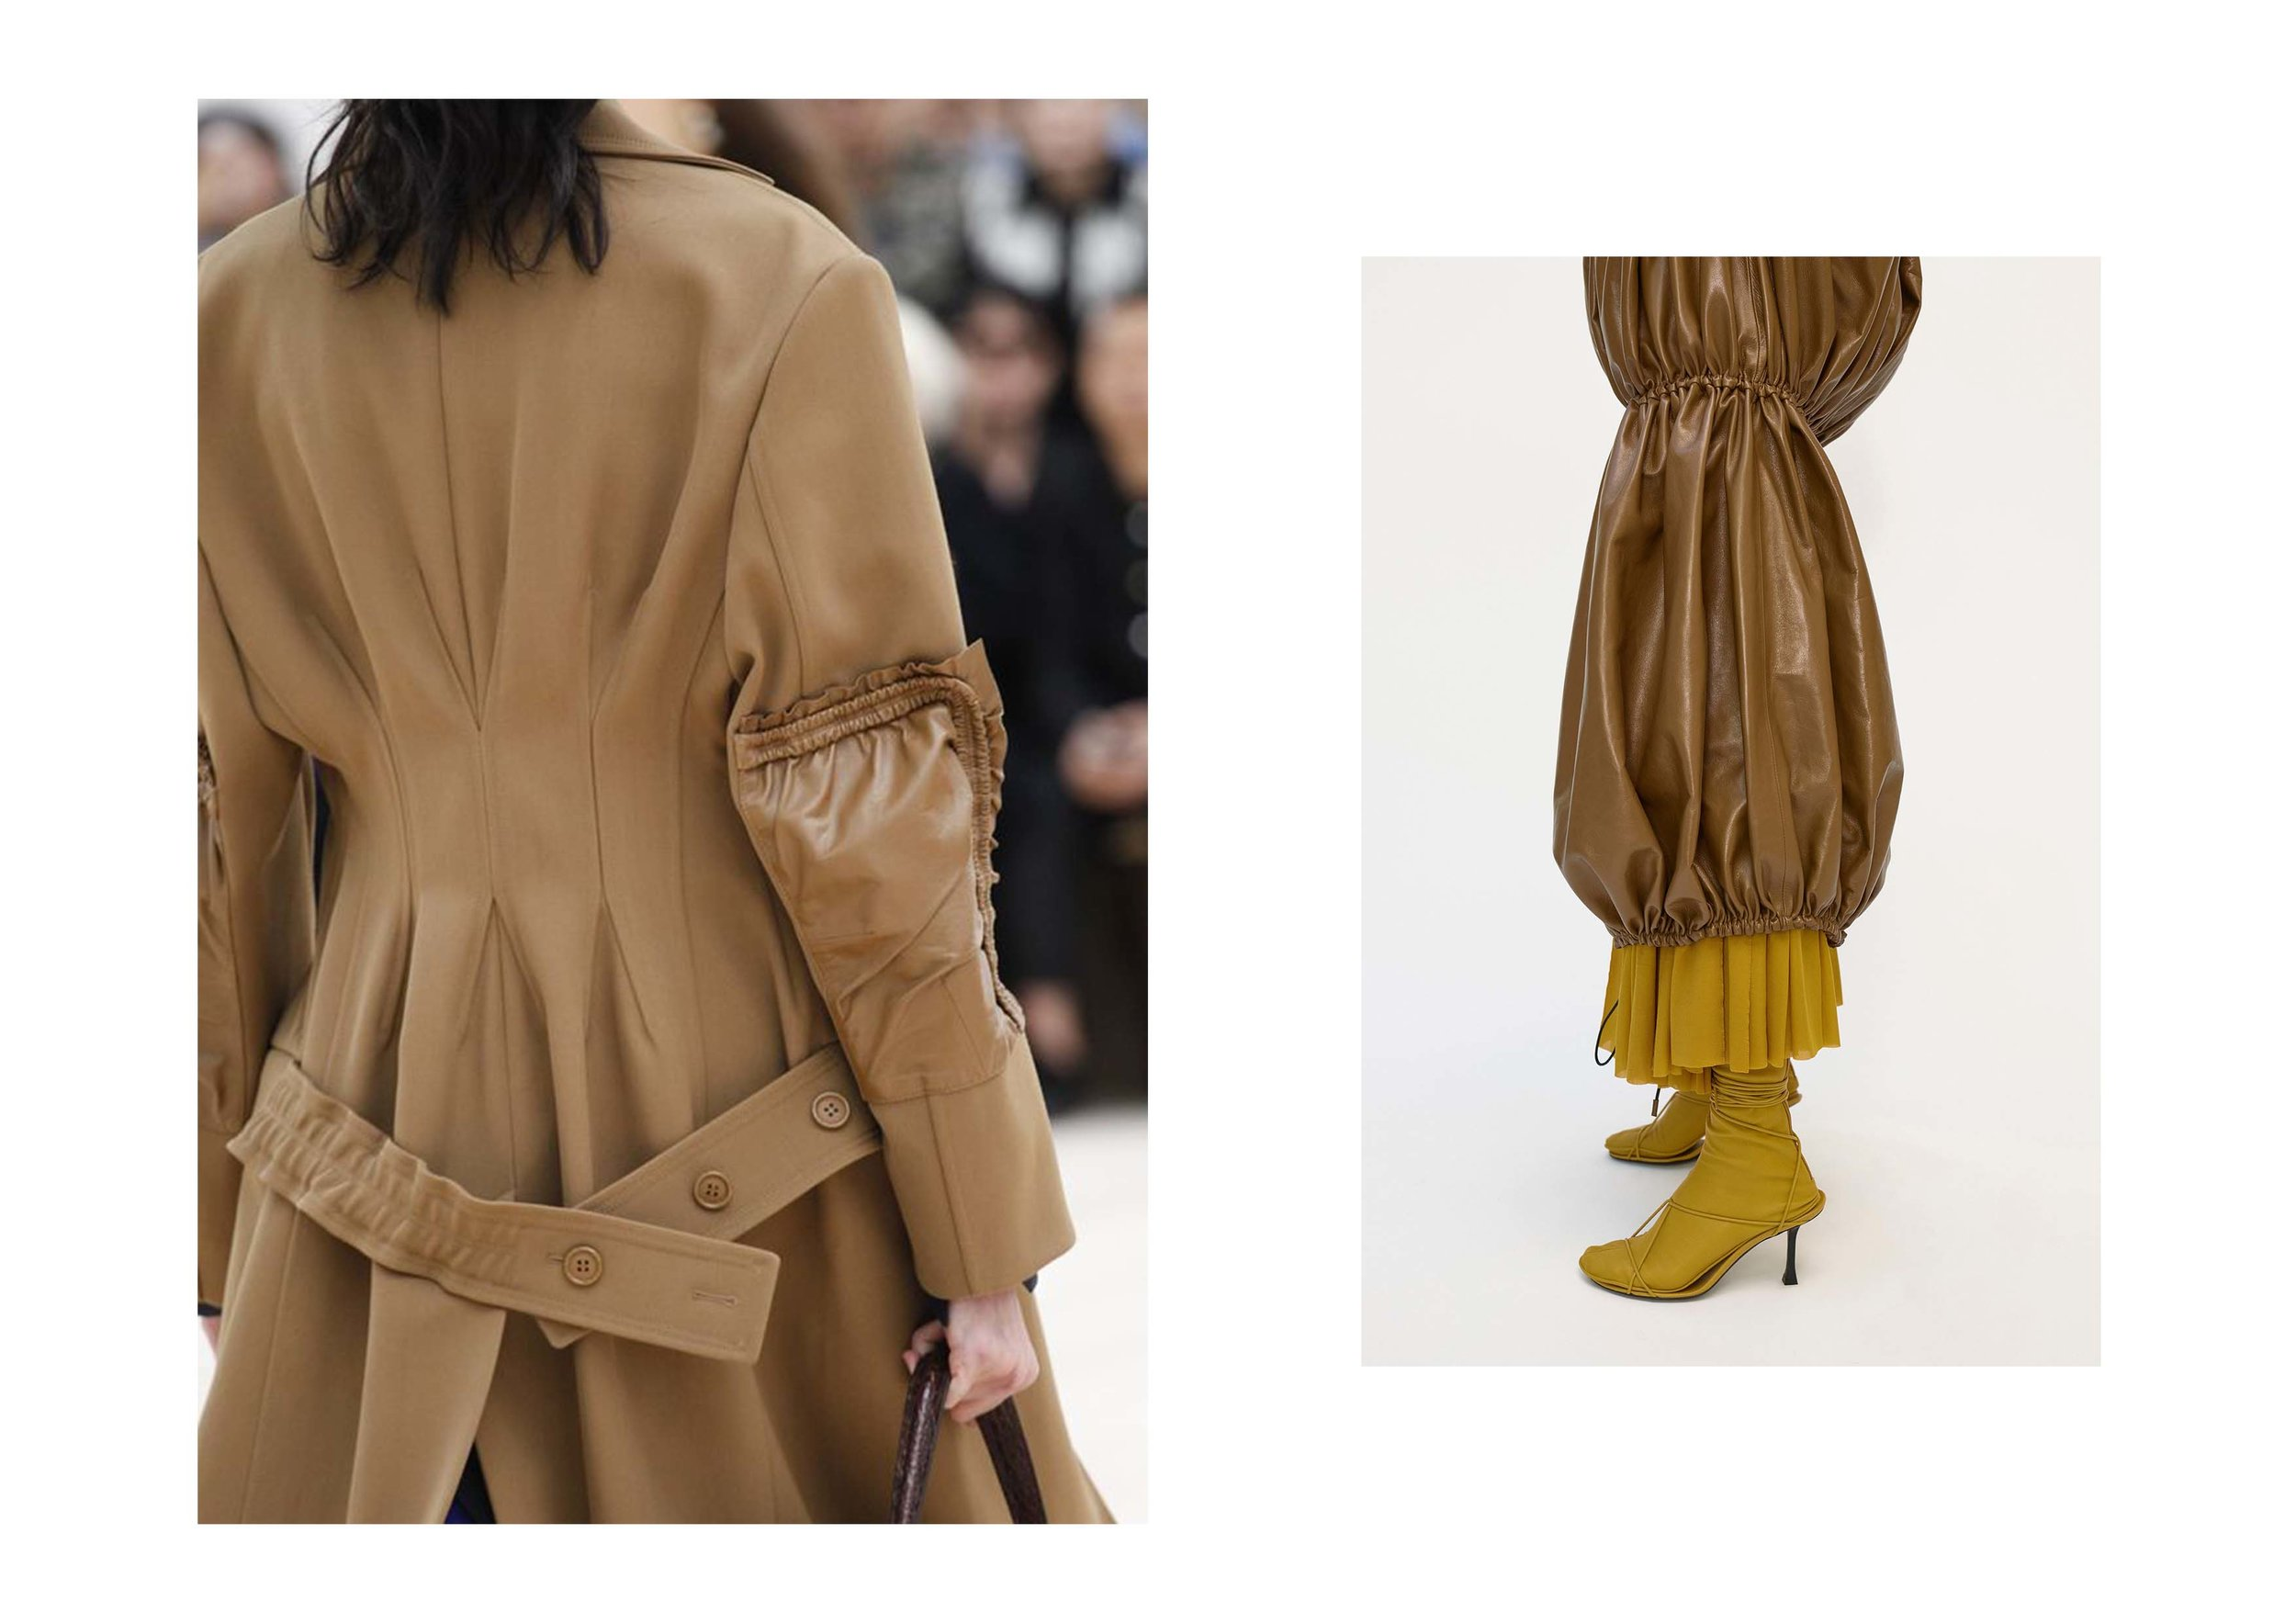 What does it mean to a brand with an exceptional personality such as  CÉLINE , to change an artistic director with a completely different aesthetic in another utterly irrelevant territory?